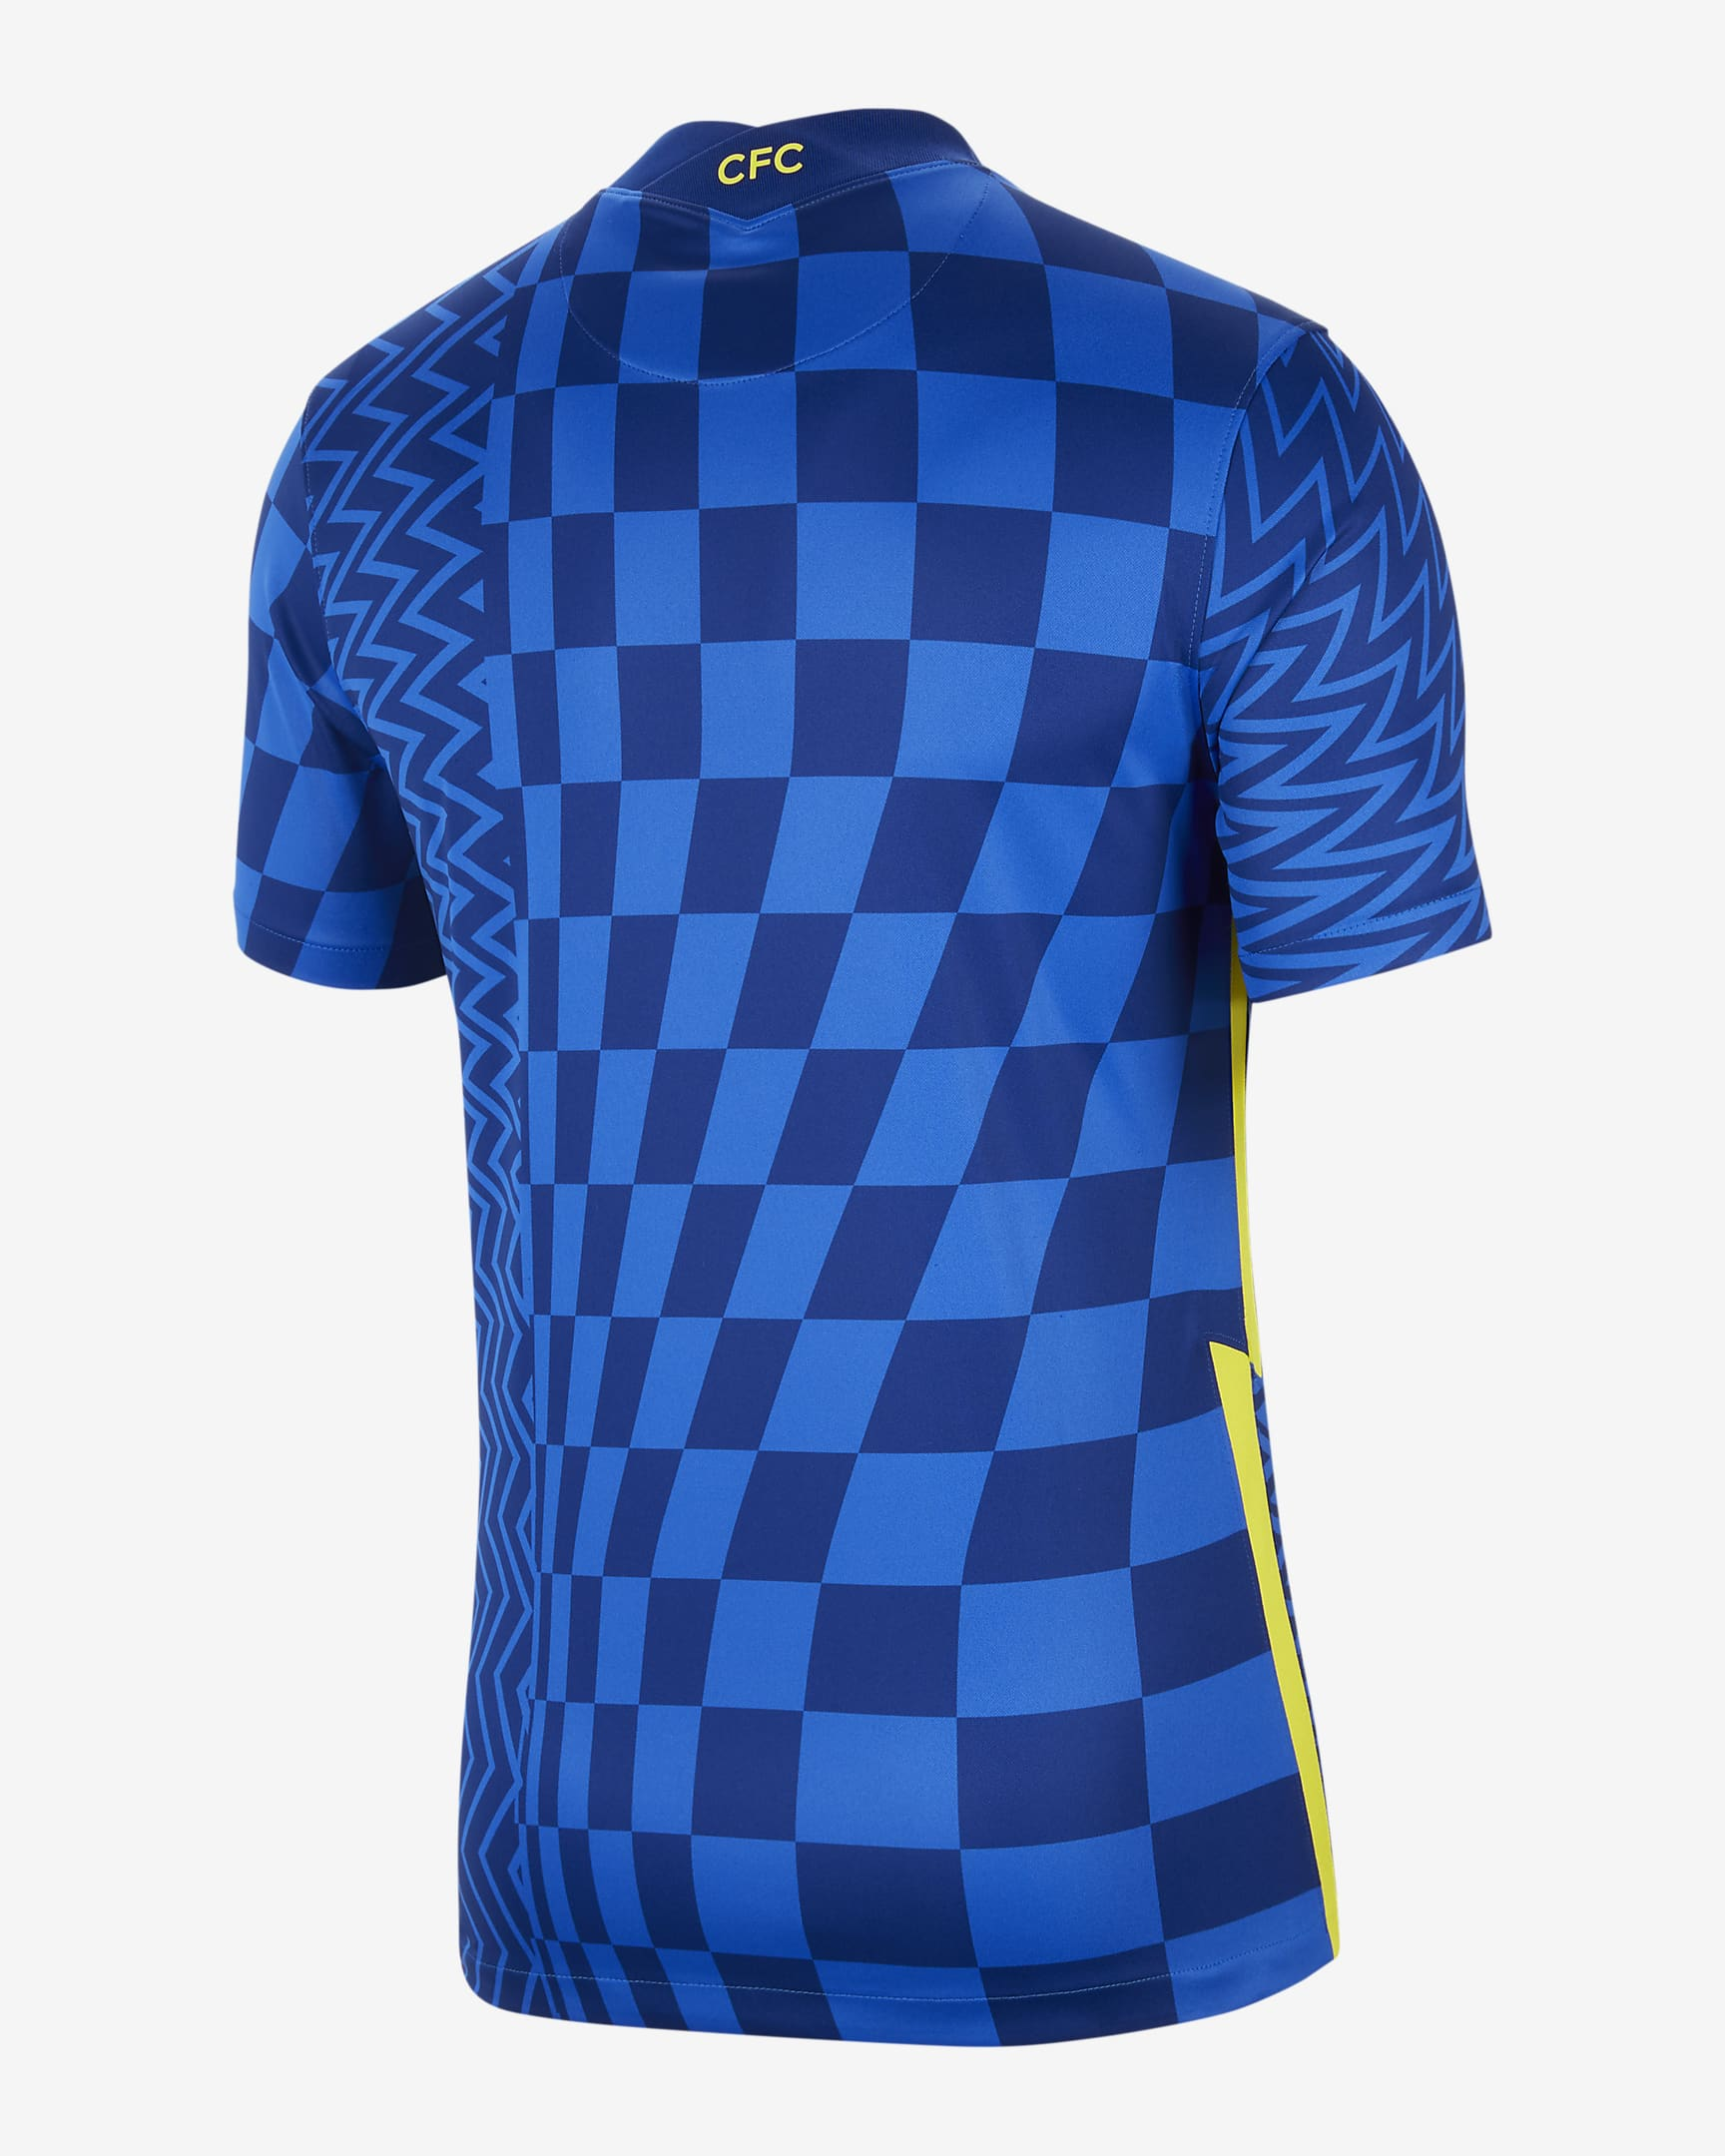 Chelsea Home Jersey By Nike 2021/22